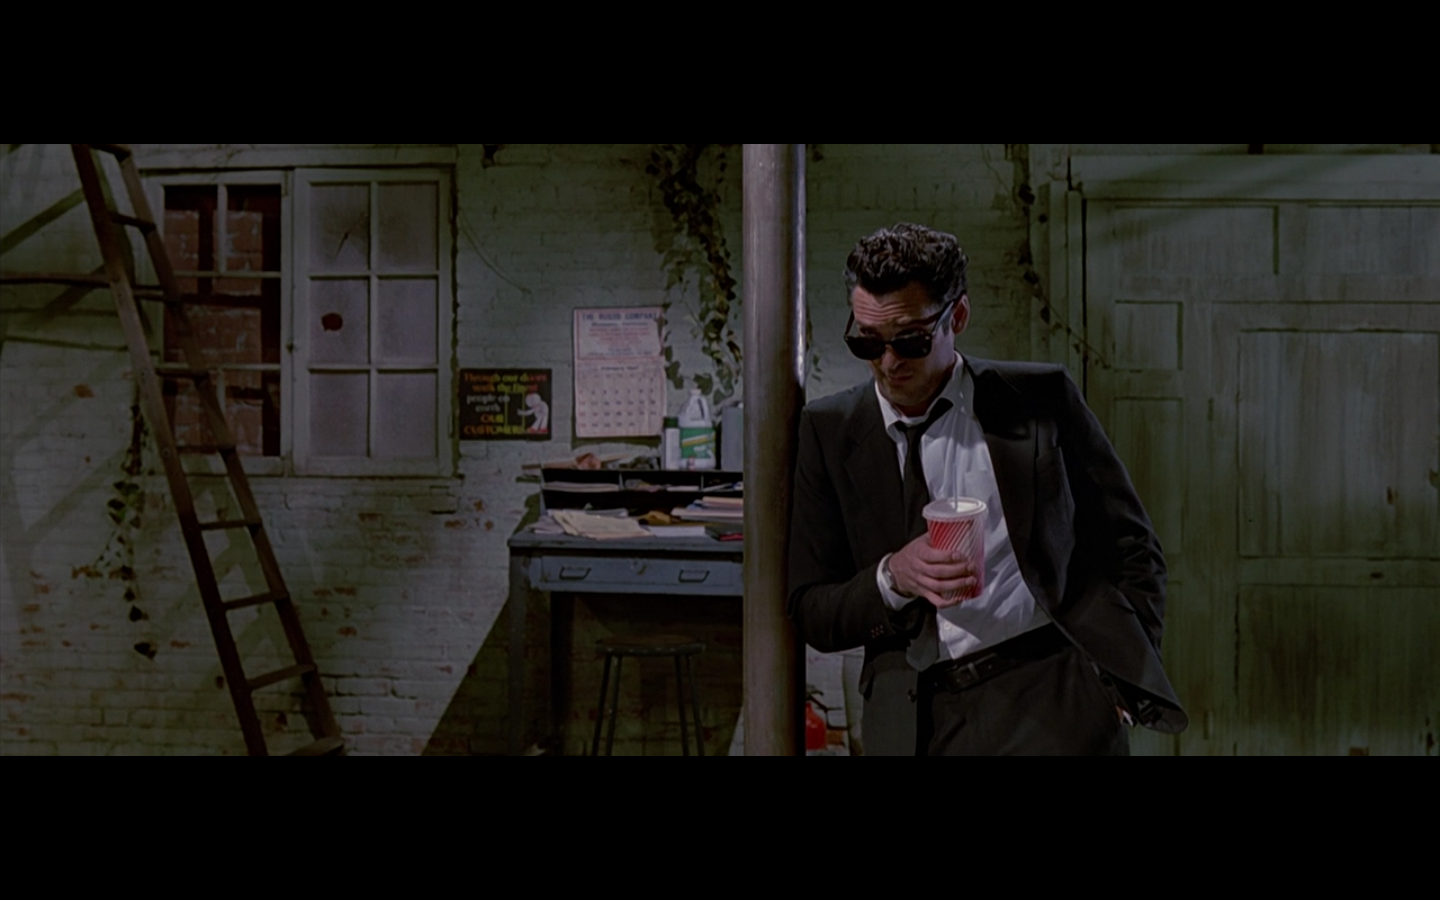 Mr blonde in the movie reservoir dogs